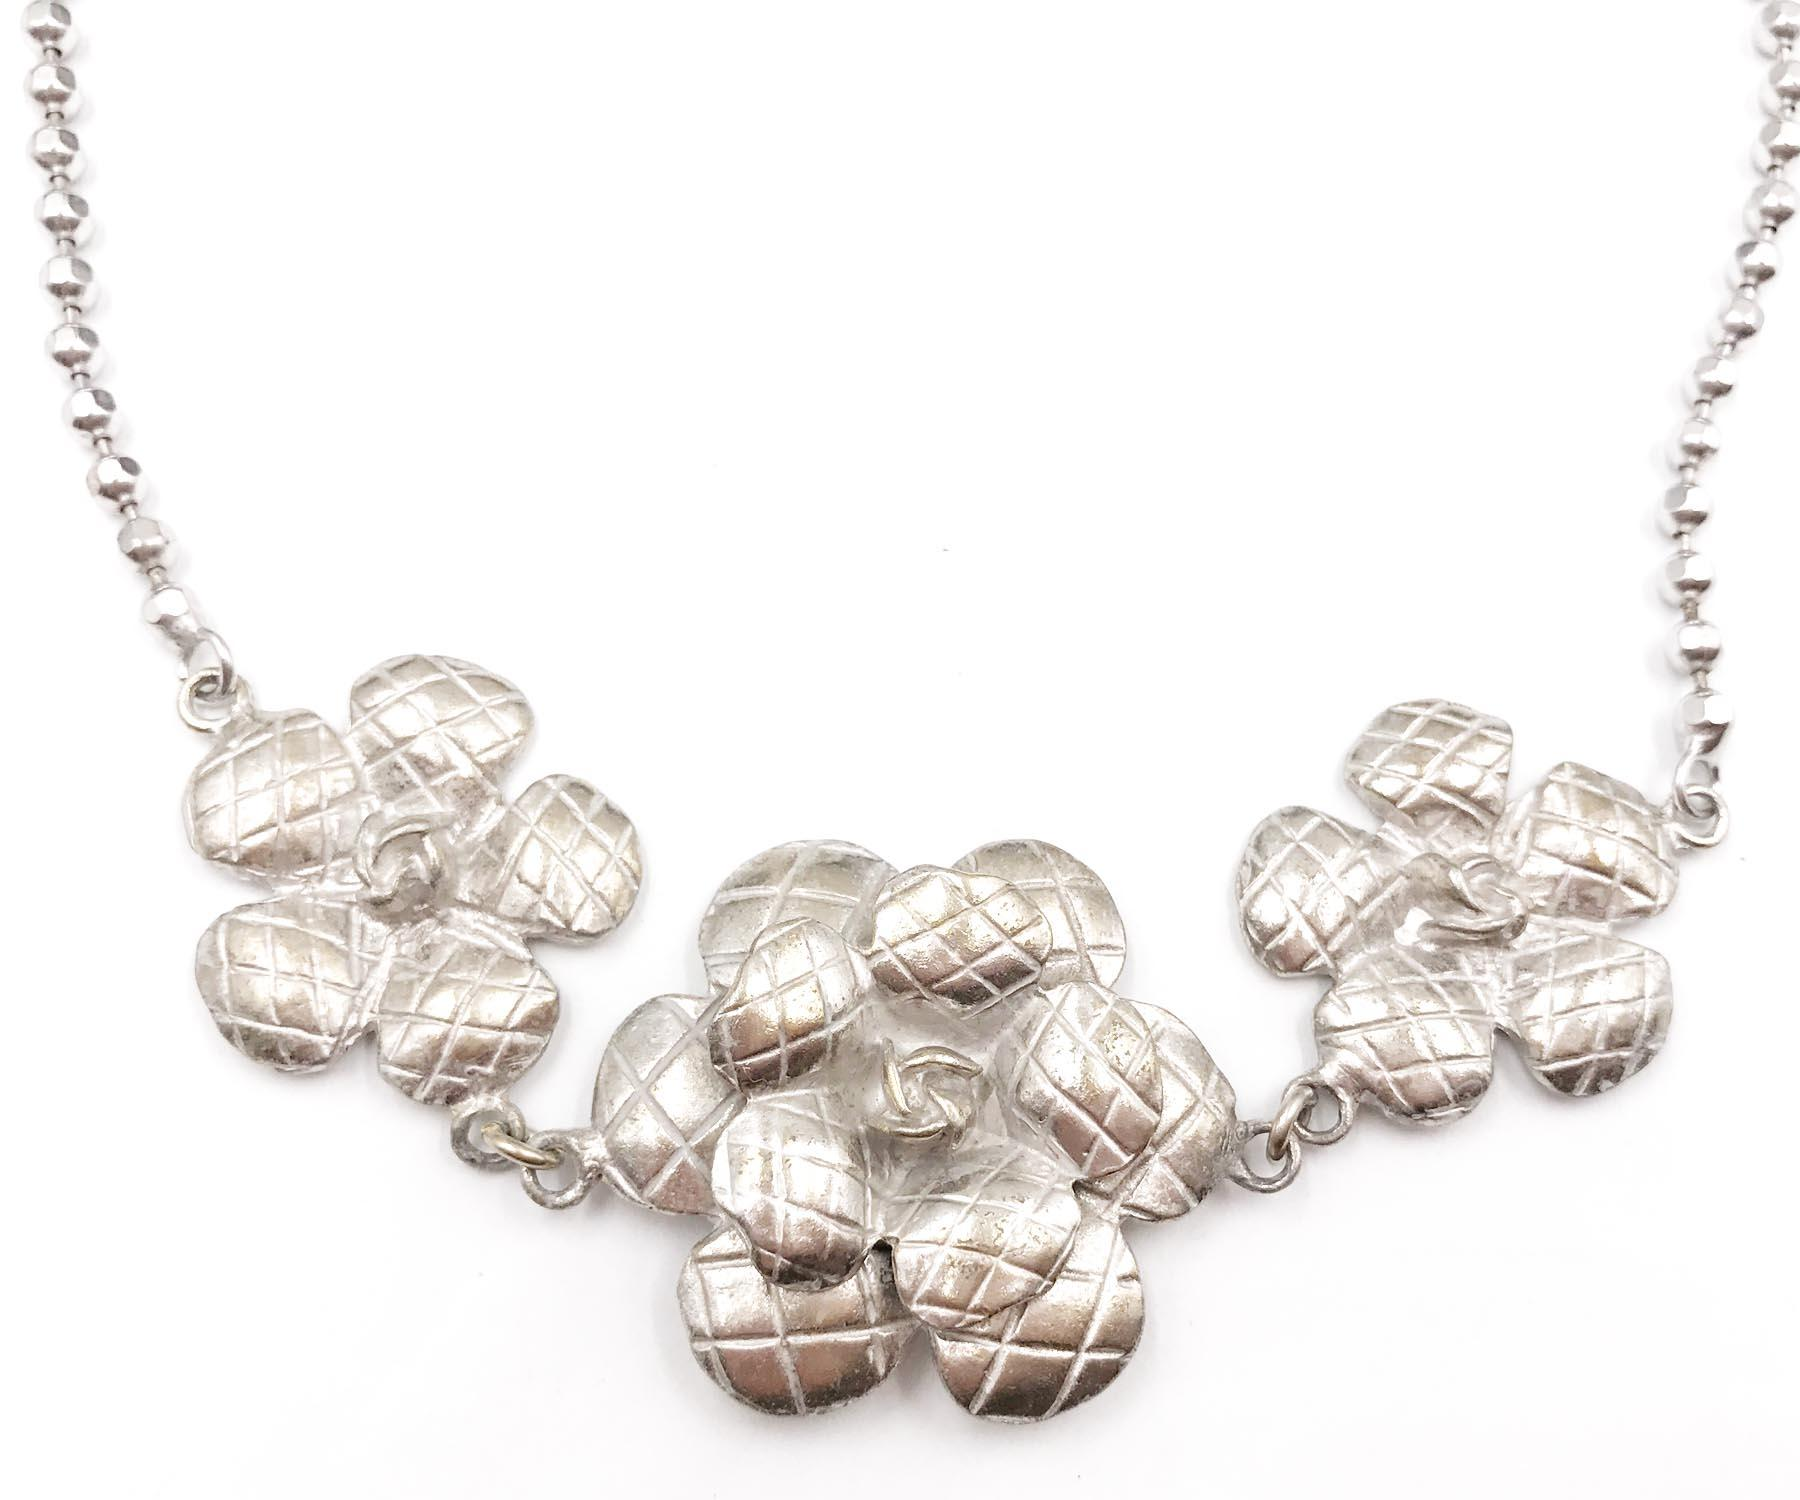 Chanel Silver Vintage Camellia Flower and Necklace Set